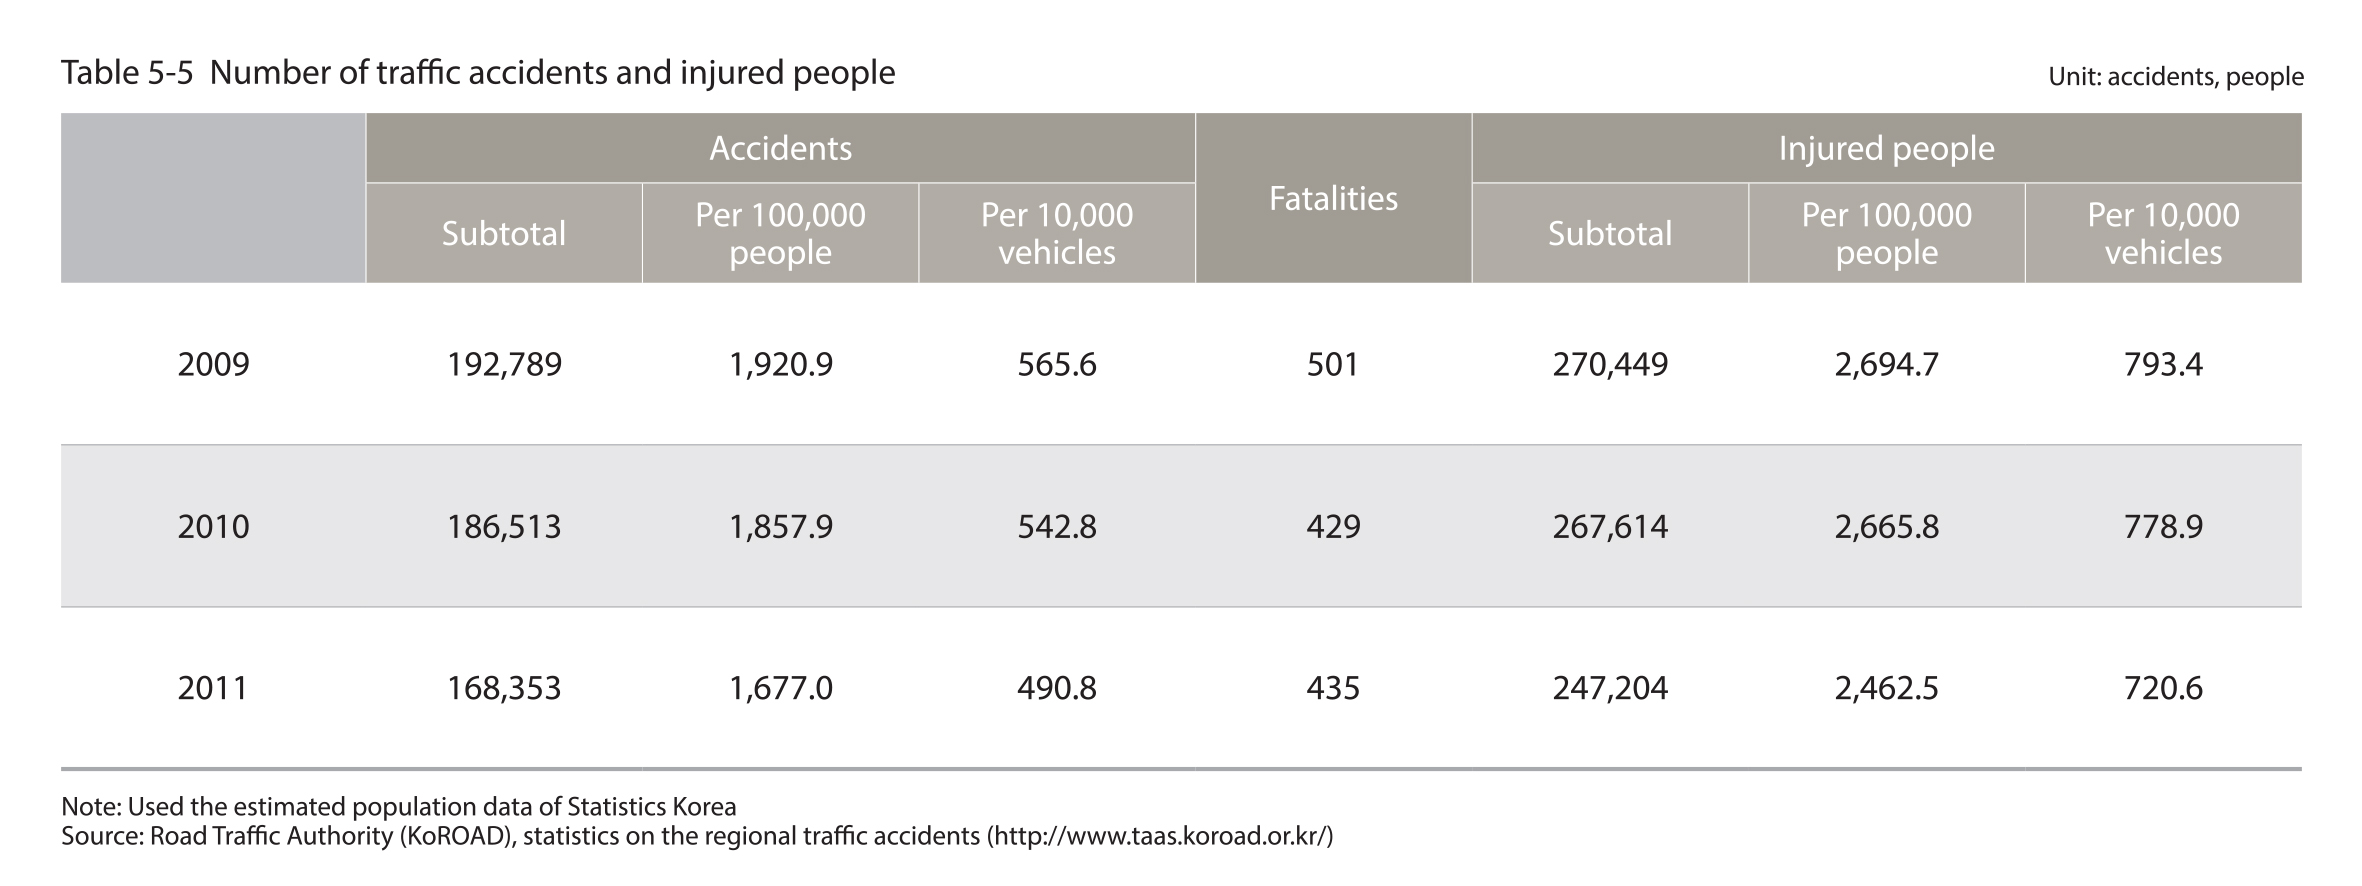 Number of traffic accidents and injured people